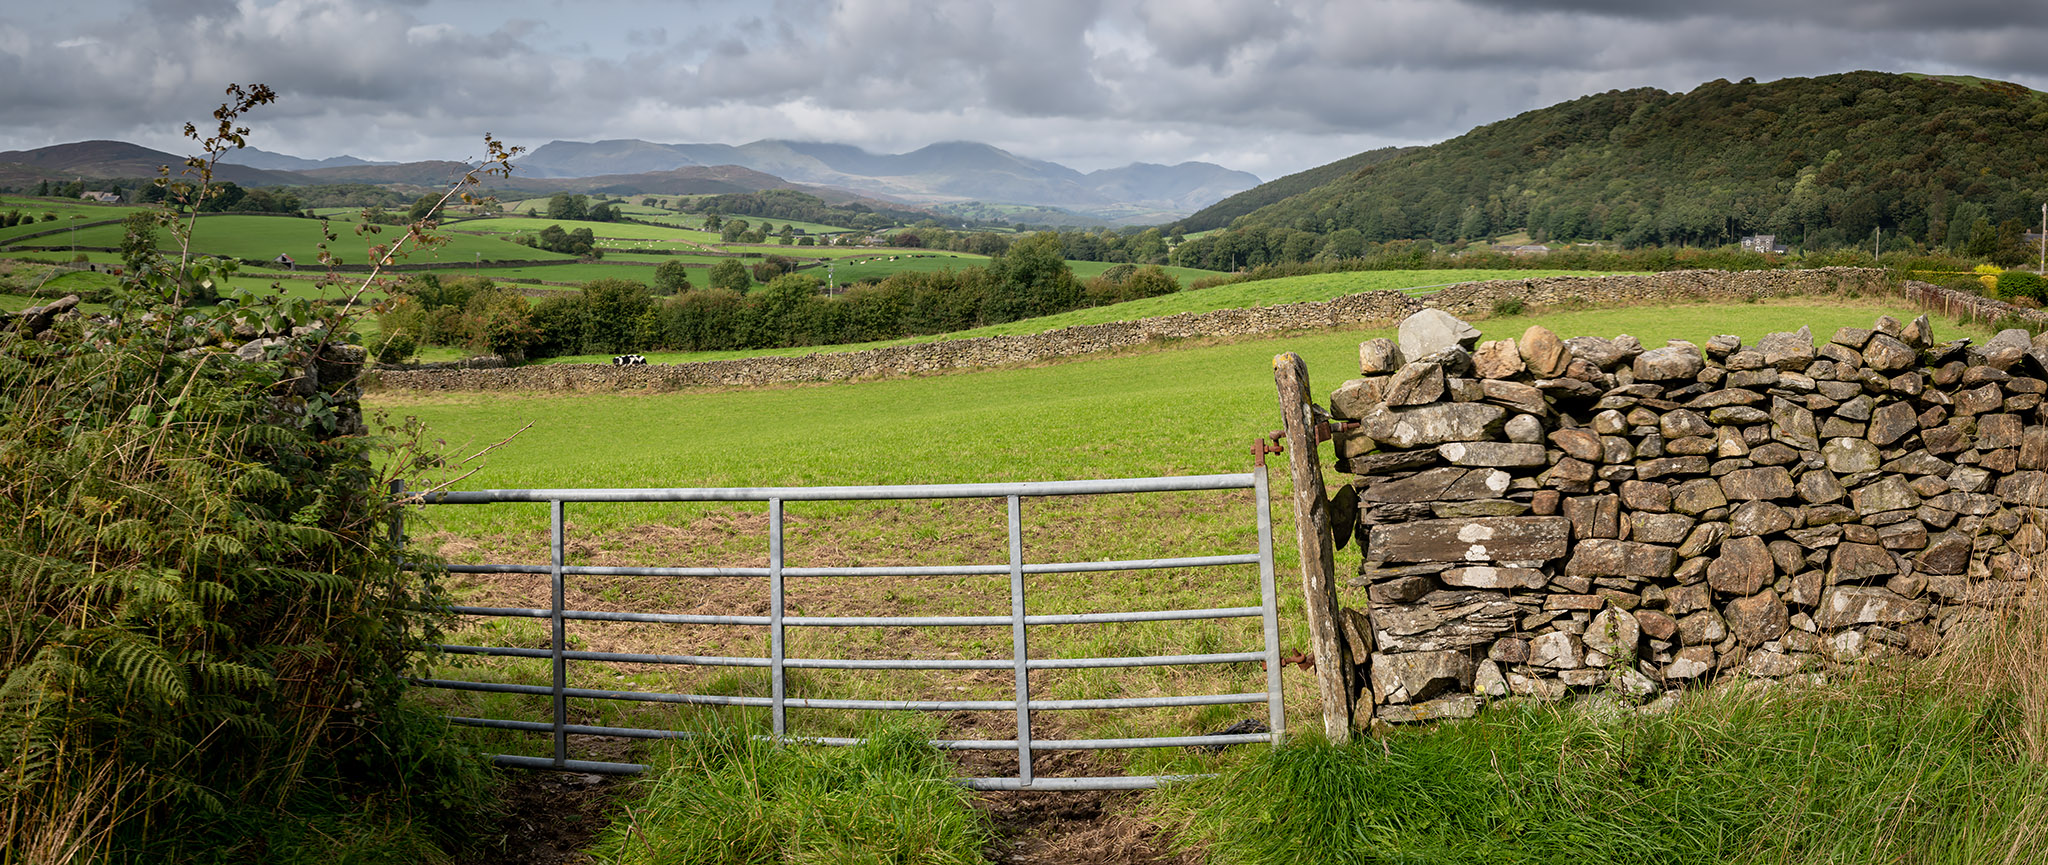 Sunday:  The Crake Valley from Lowick Green